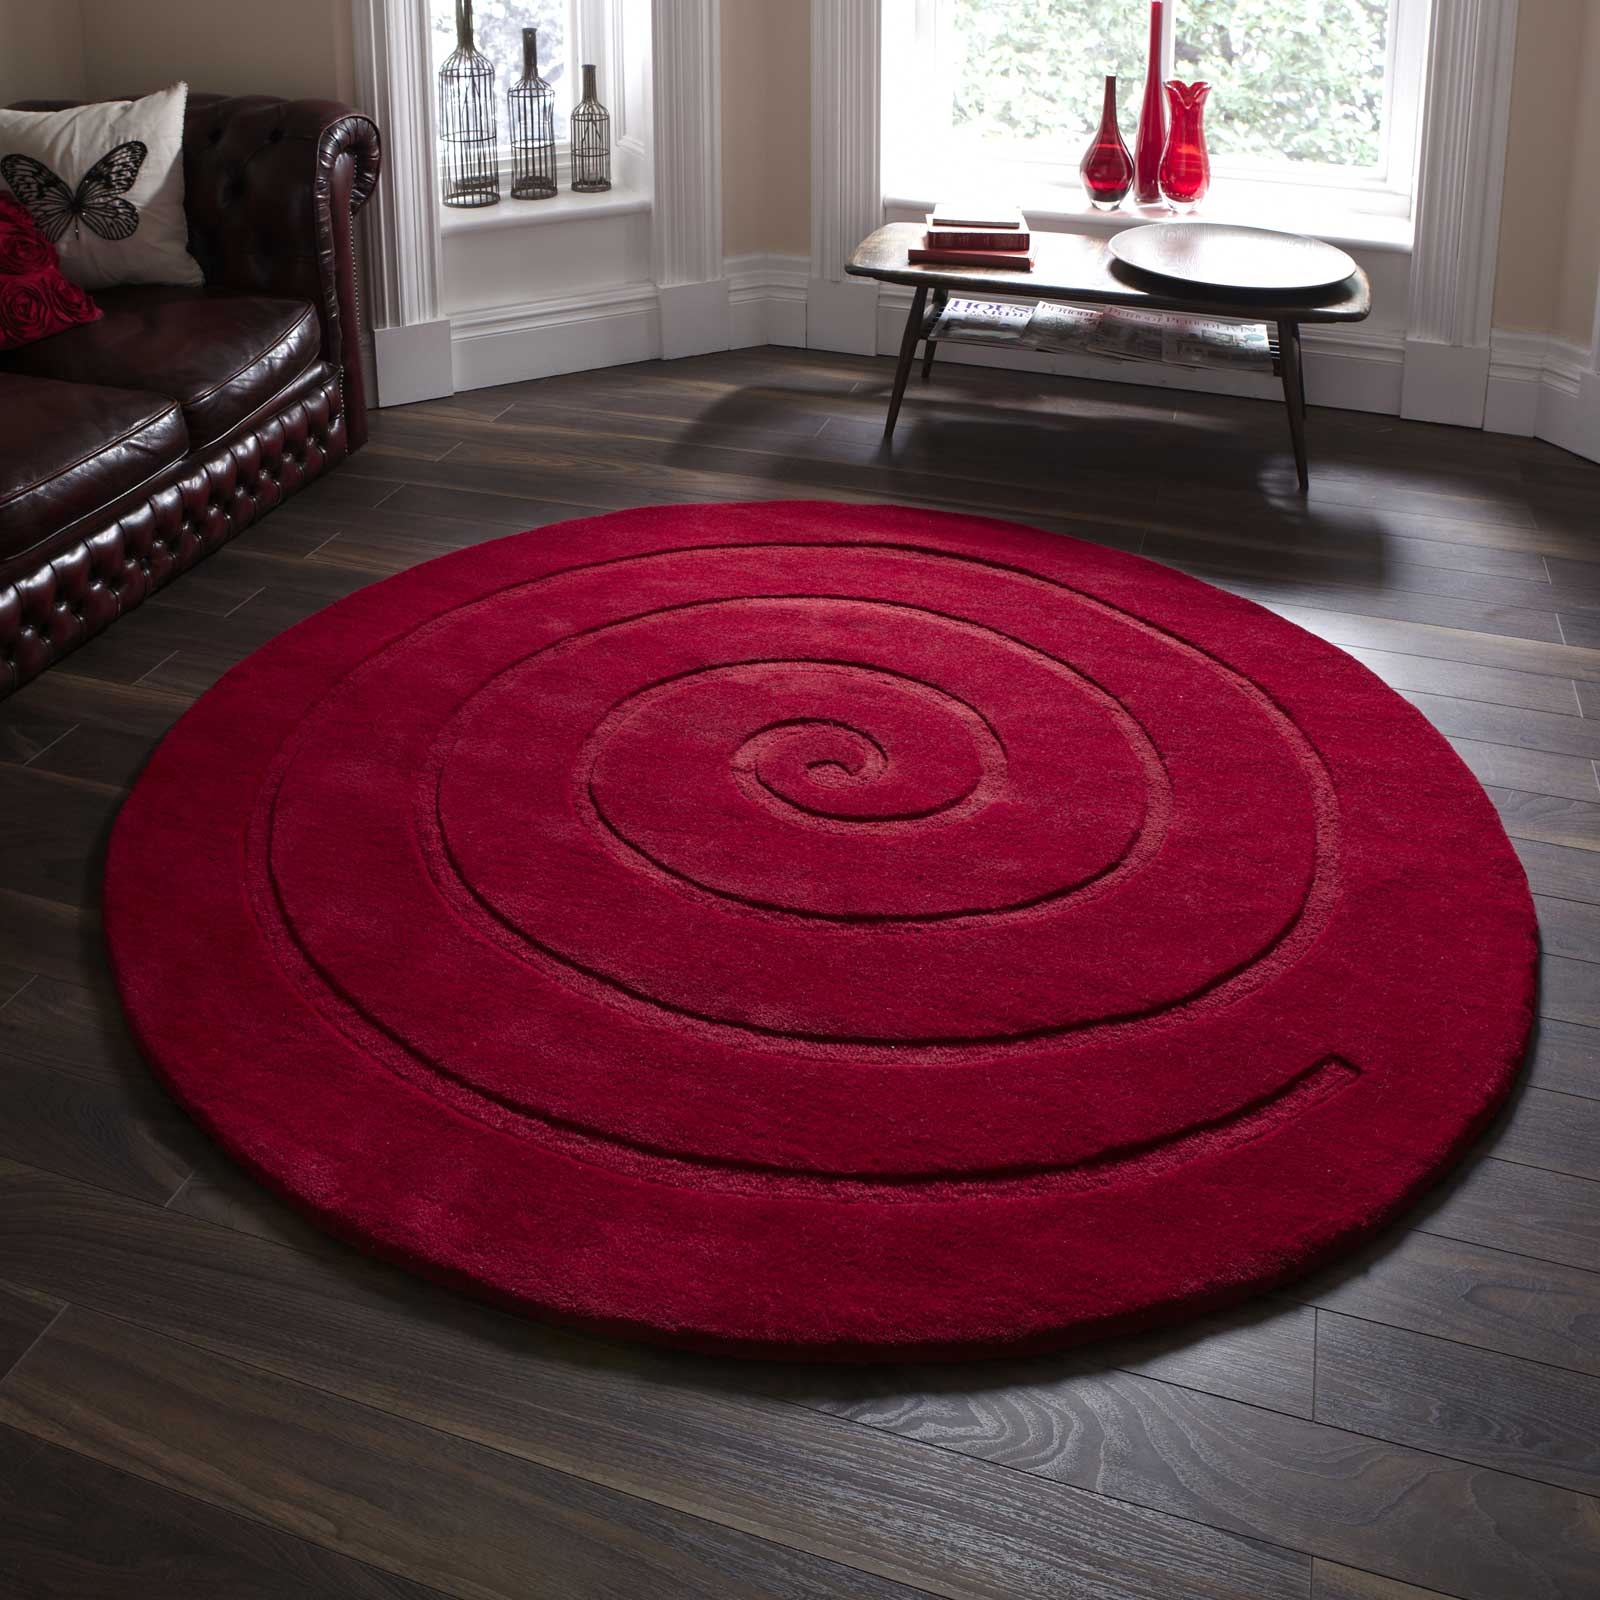 Large Round Rugs Uk Roselawnlutheran Intended For Large Red Rugs (View 13 of 15)